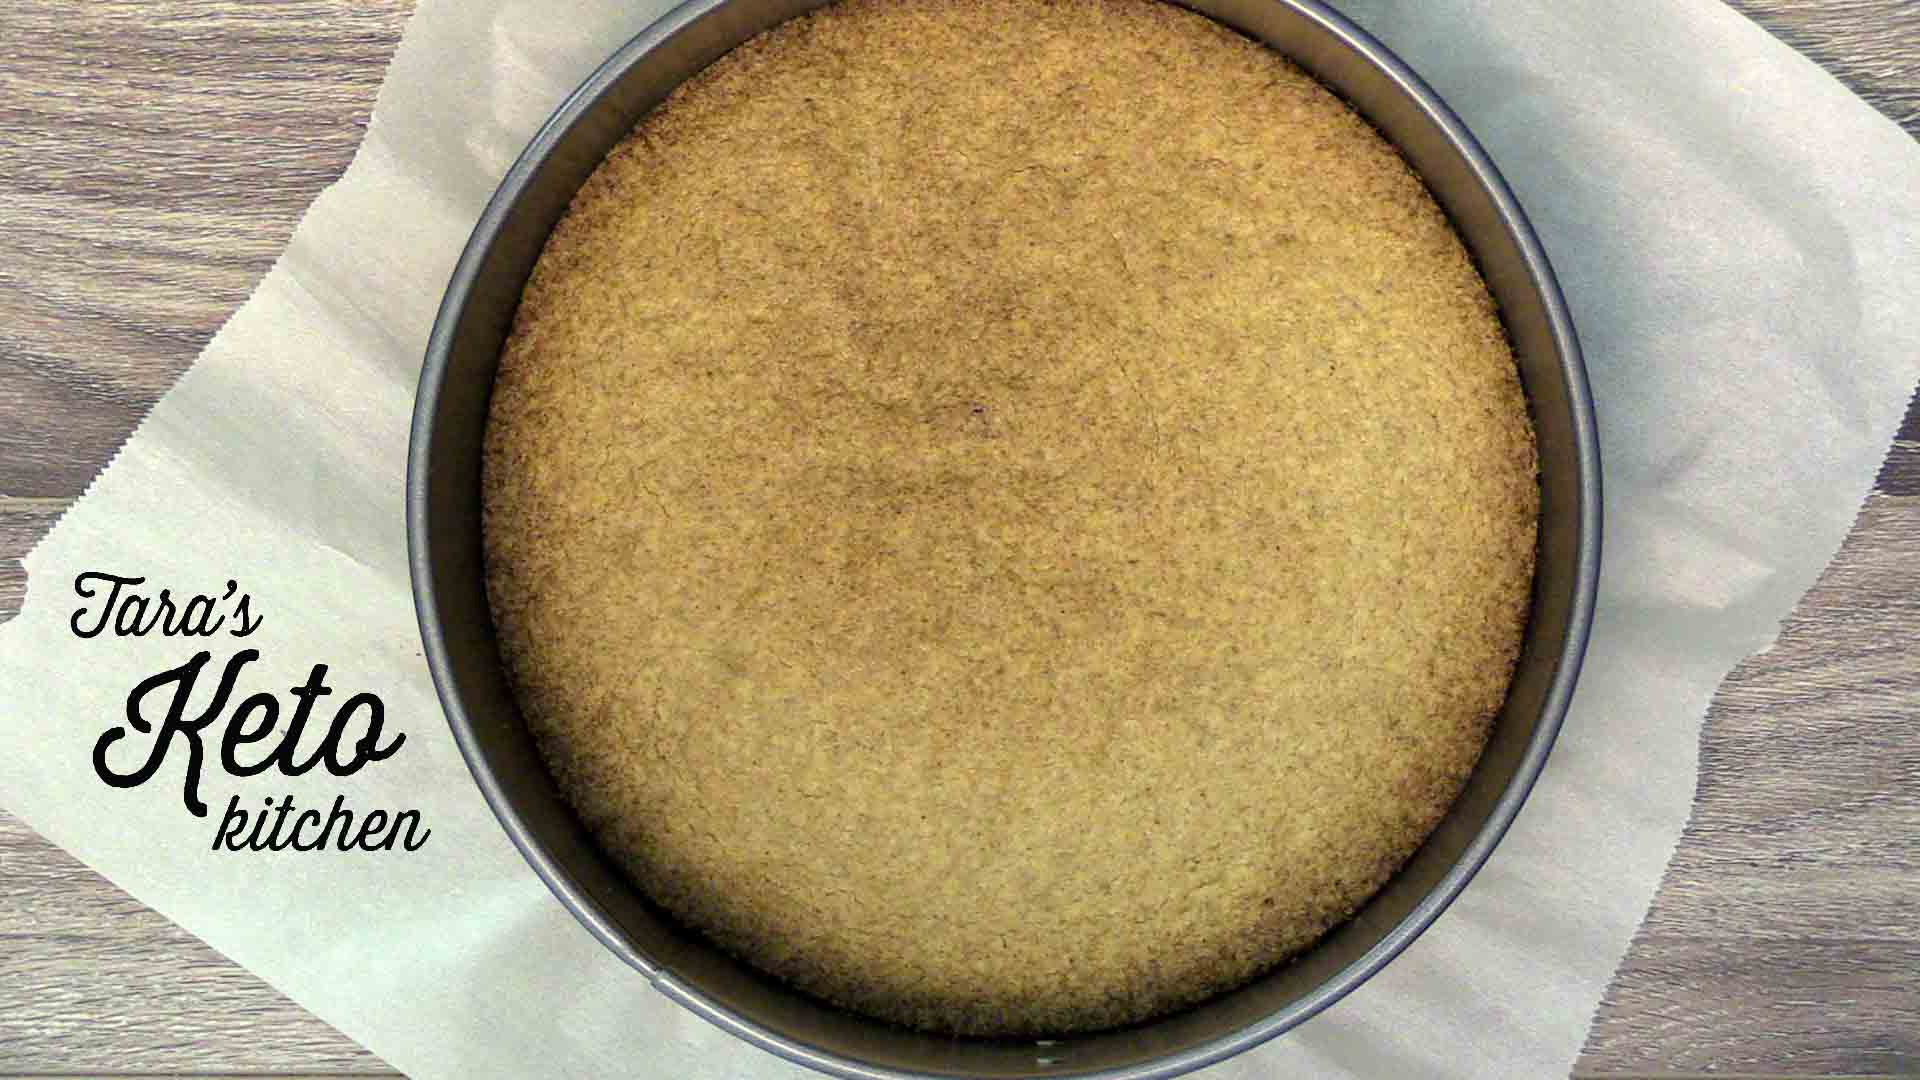 keto cheesecake crust